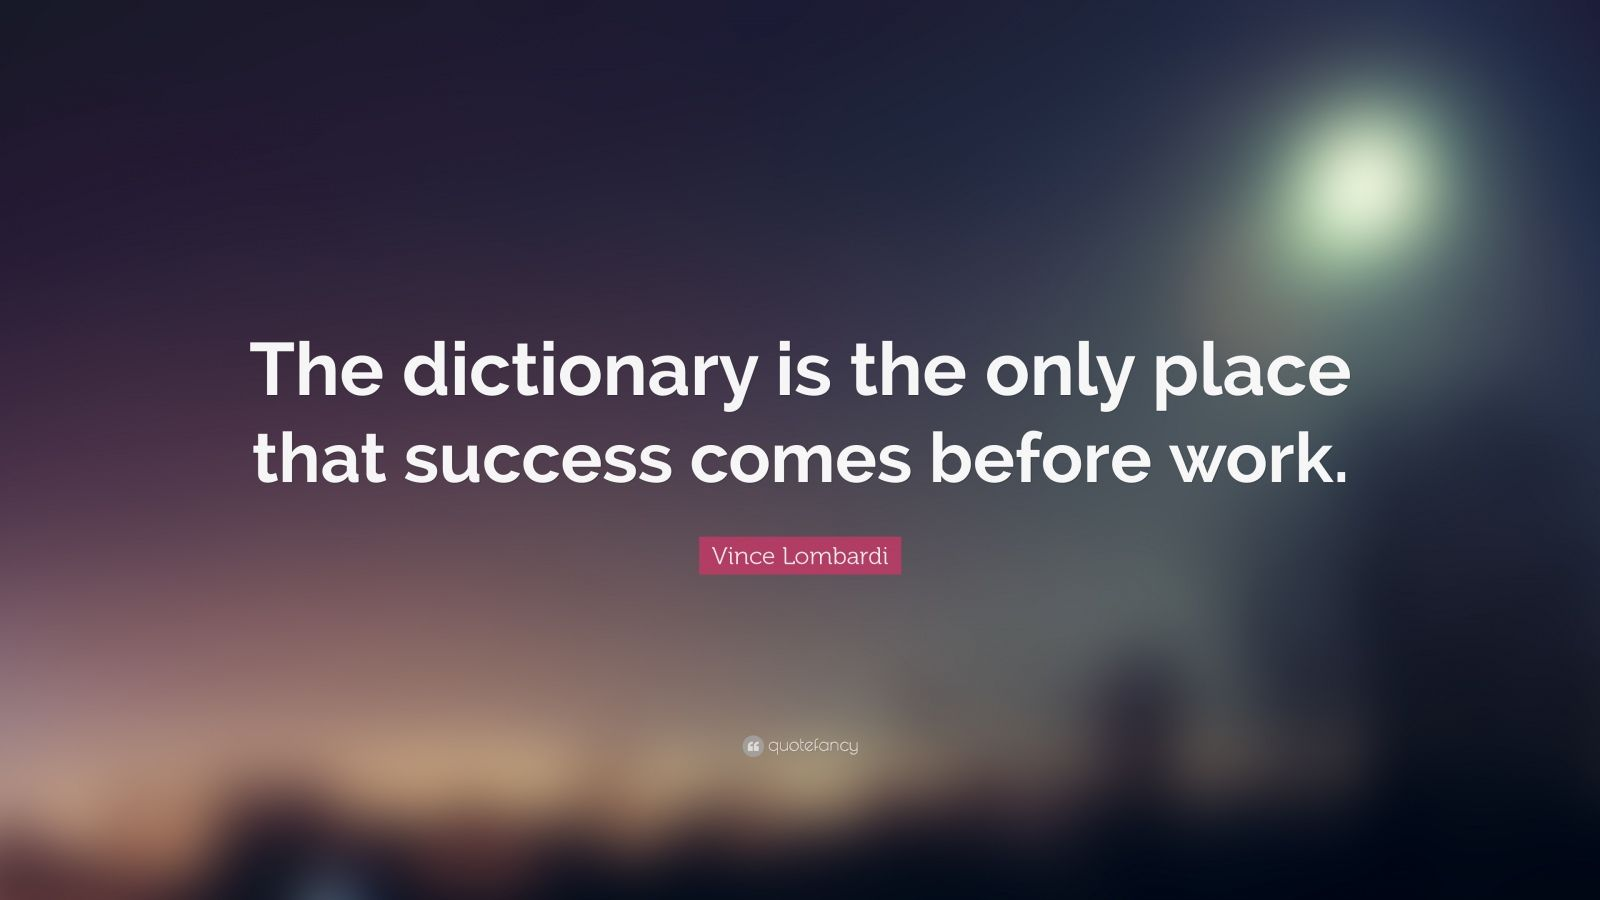 vince lombardi quotes dictionary success